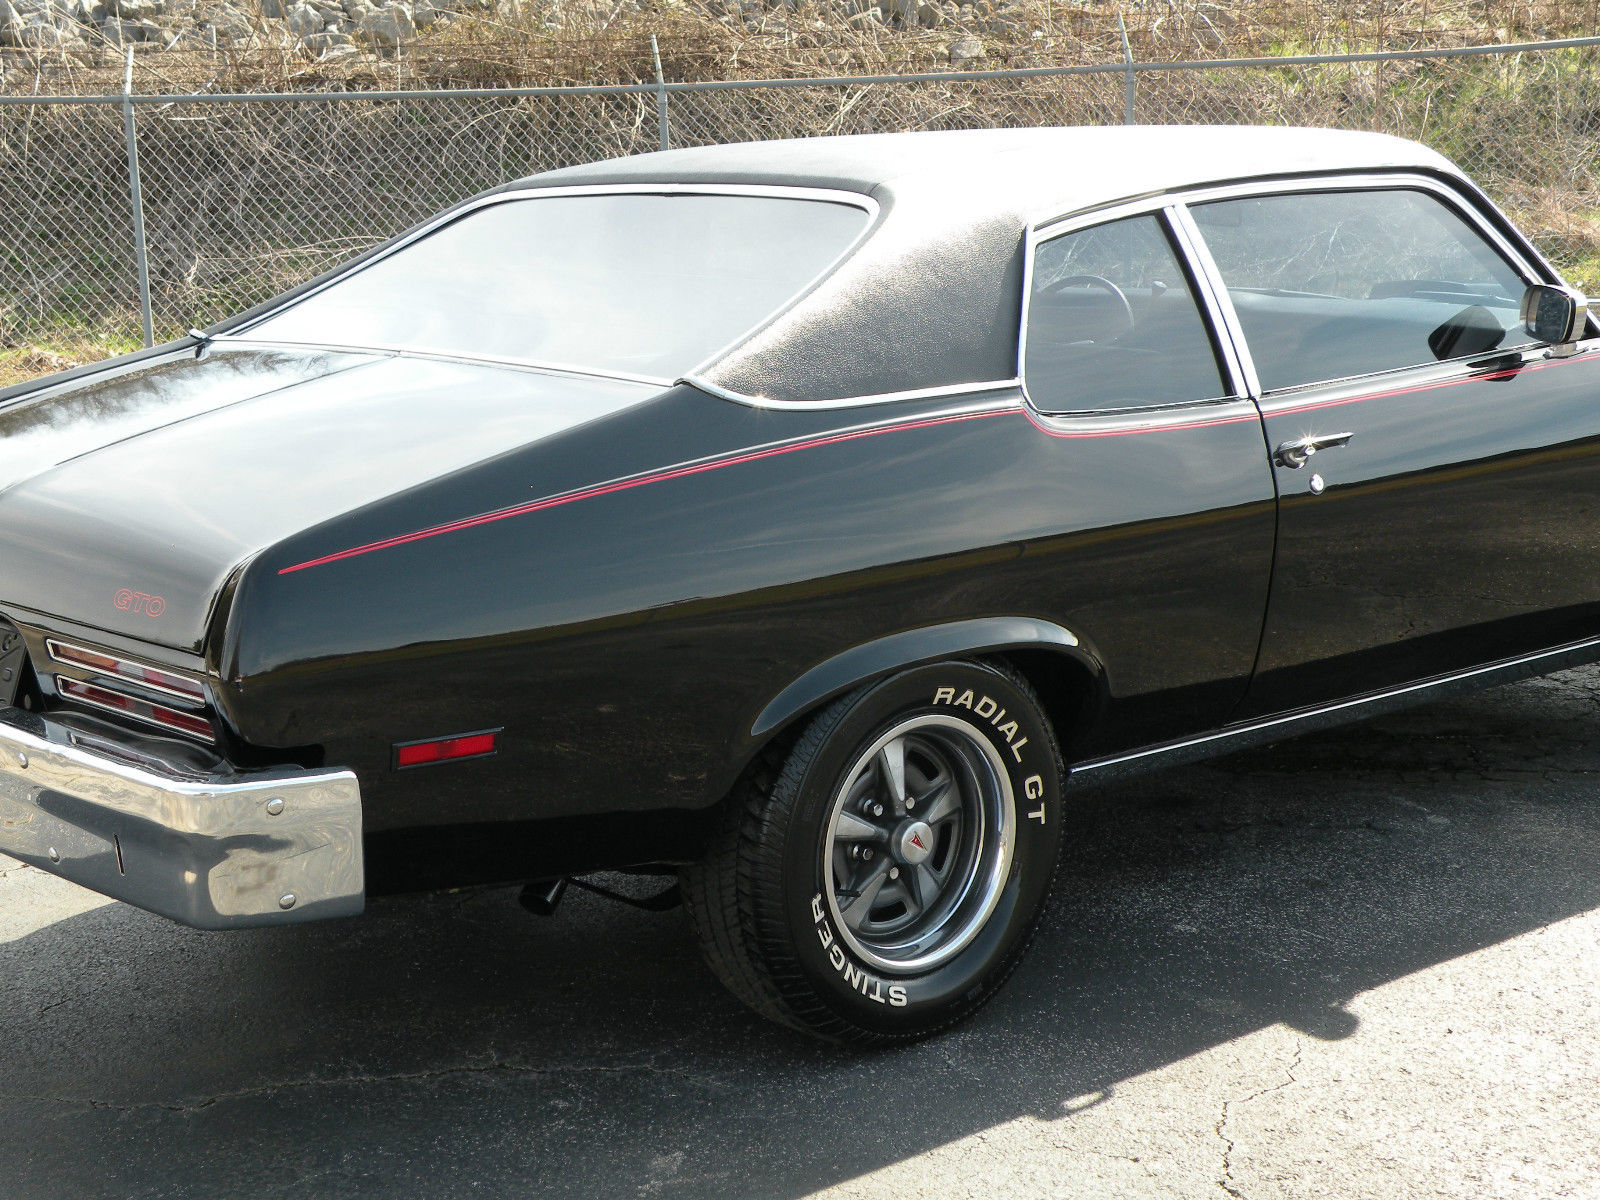 Daily Turismo Auction Watch 1973 Pontiac Ventura Gto Clone Project Car From Ebay Listing